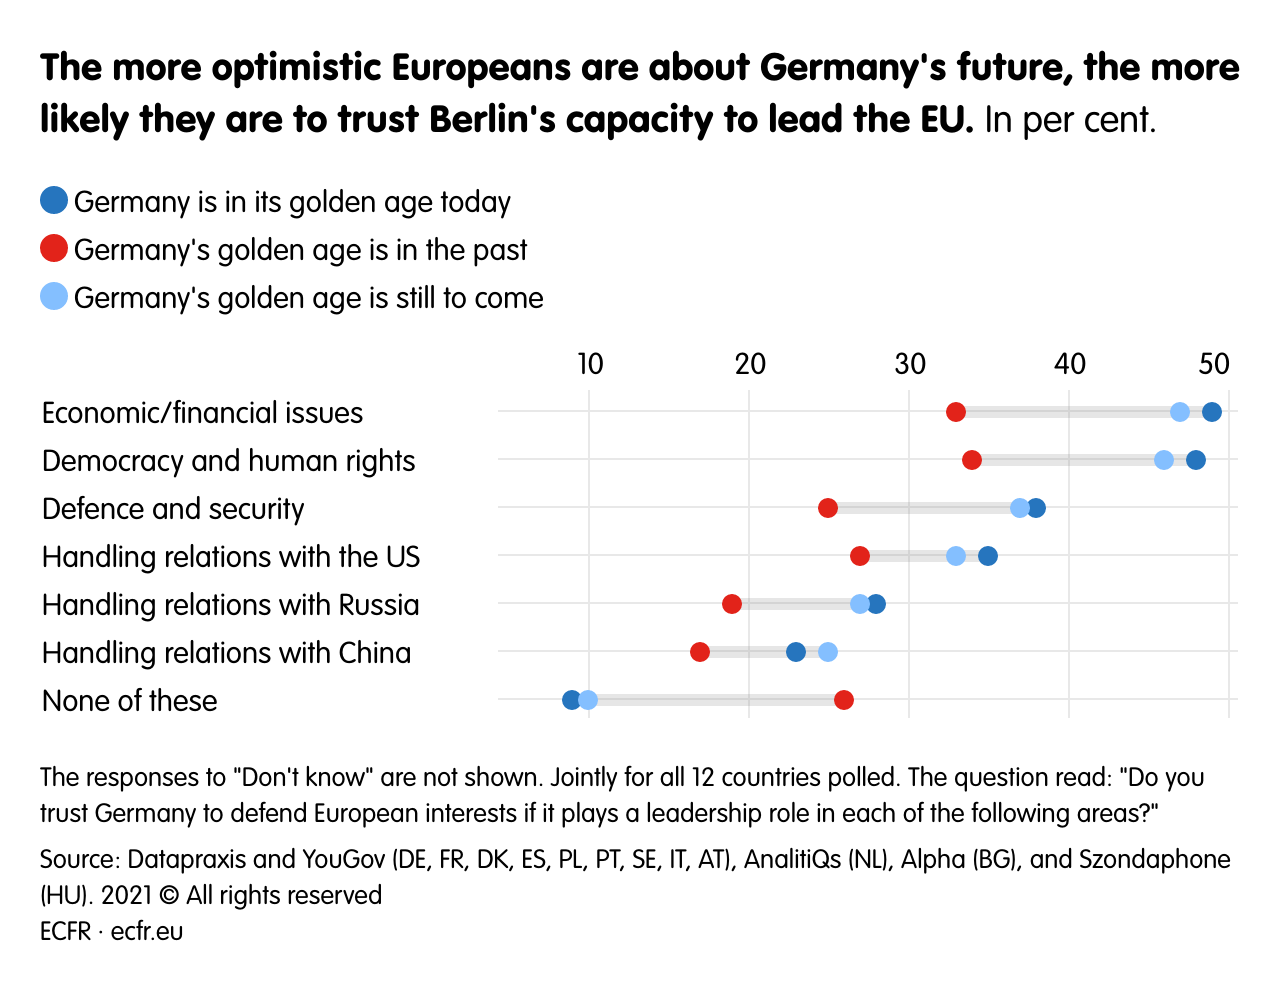 The more optimistic Europeans areabout Germany's future, the more likely they are to trust Berlin's capacity to lead the EU.